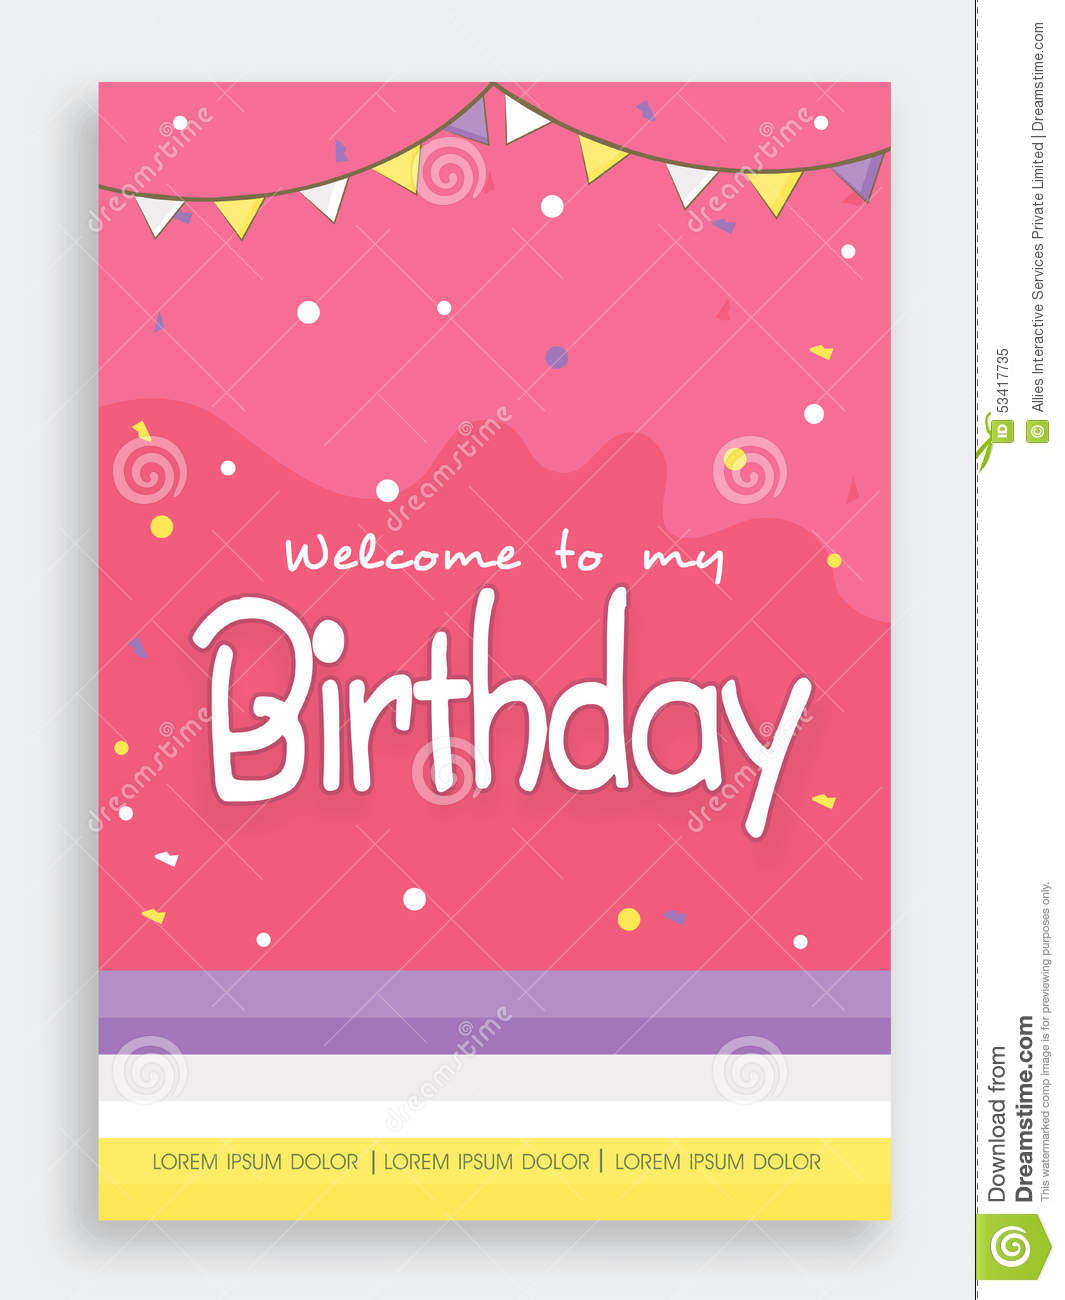 Invitation Card Design For Birthday Party Stock Illustration